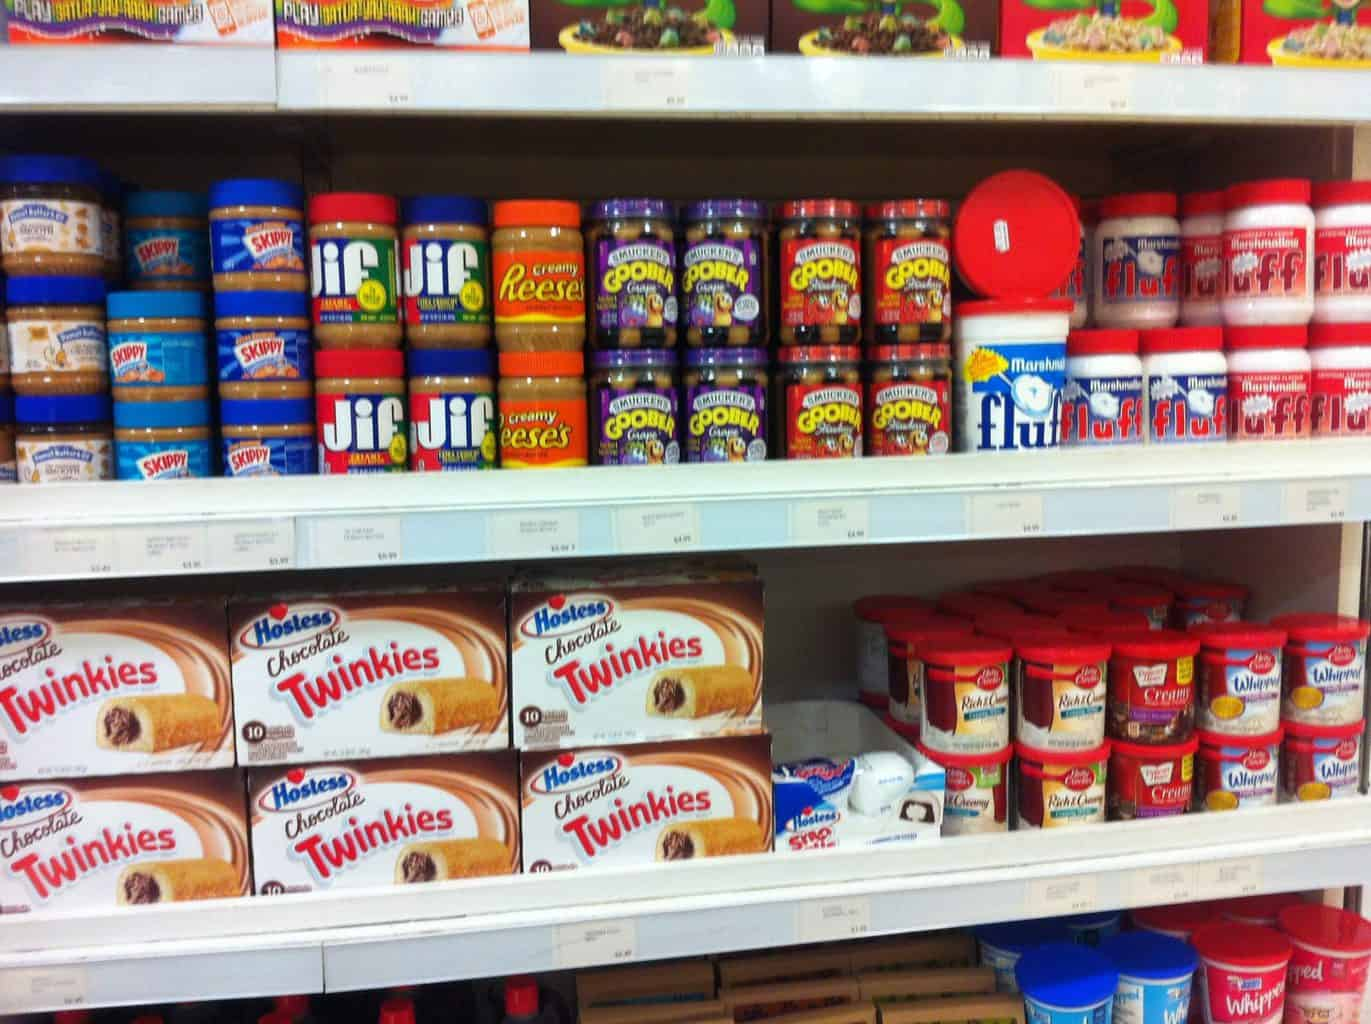 Store shelves with American food items on it such as Jif peanut butter Twinkies and Marshmallow Fluff